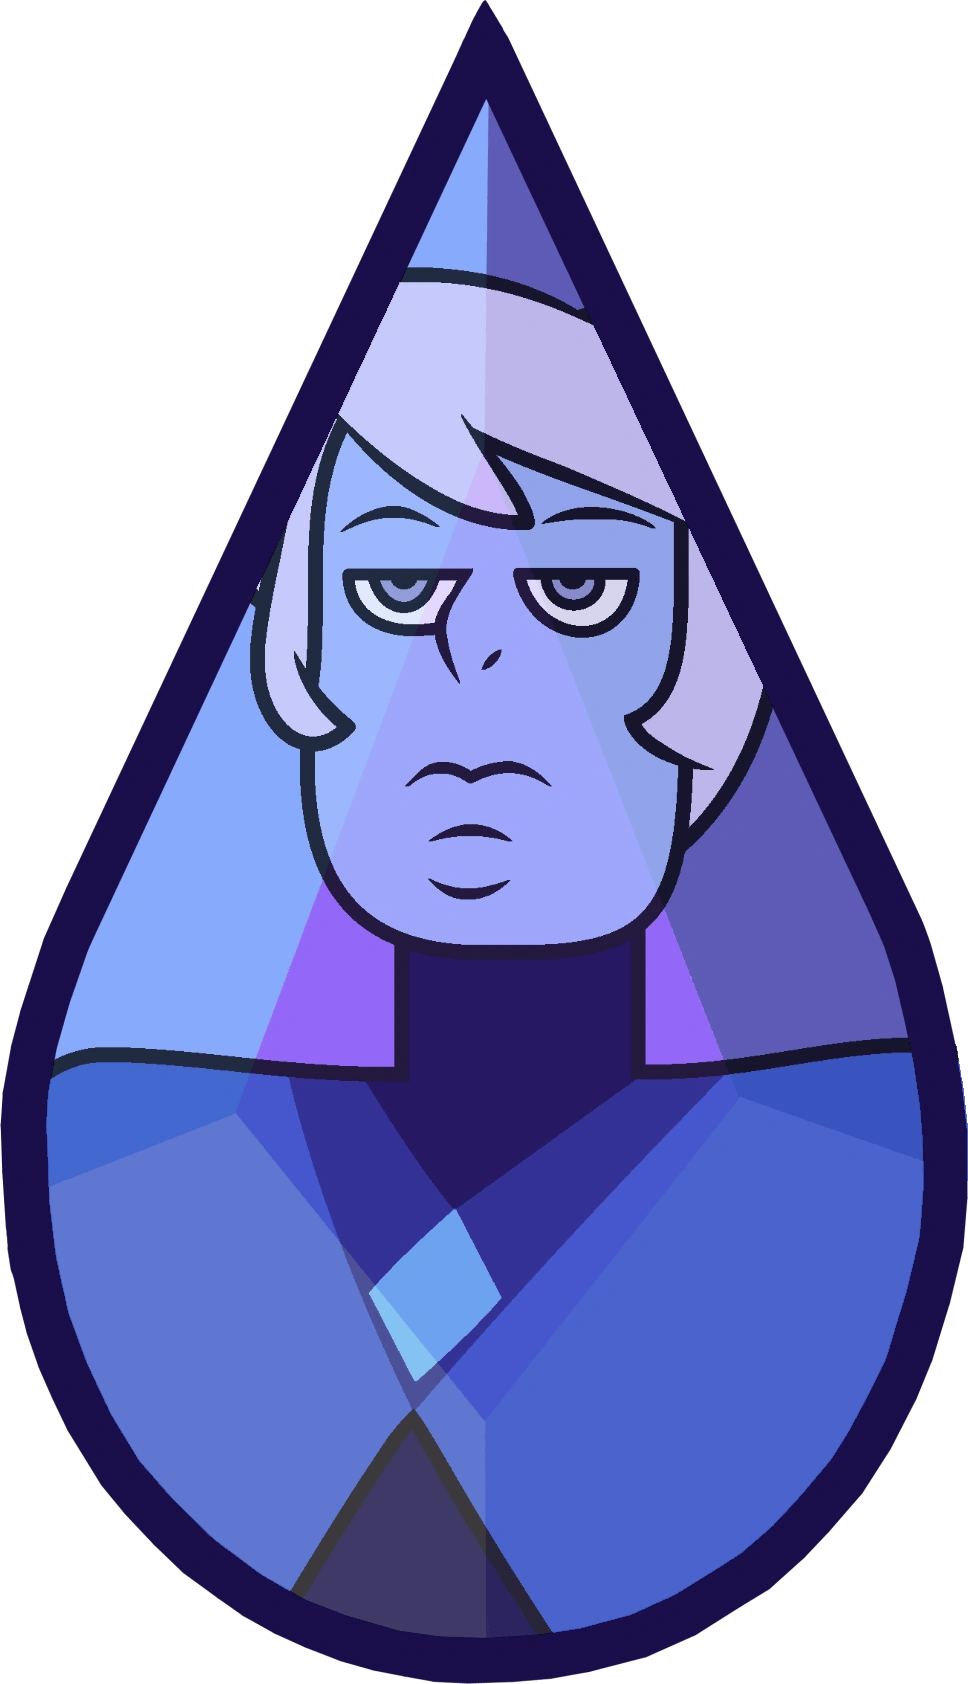 20 Steven Universe Blue Agate Pictures And Ideas On Meta Networks